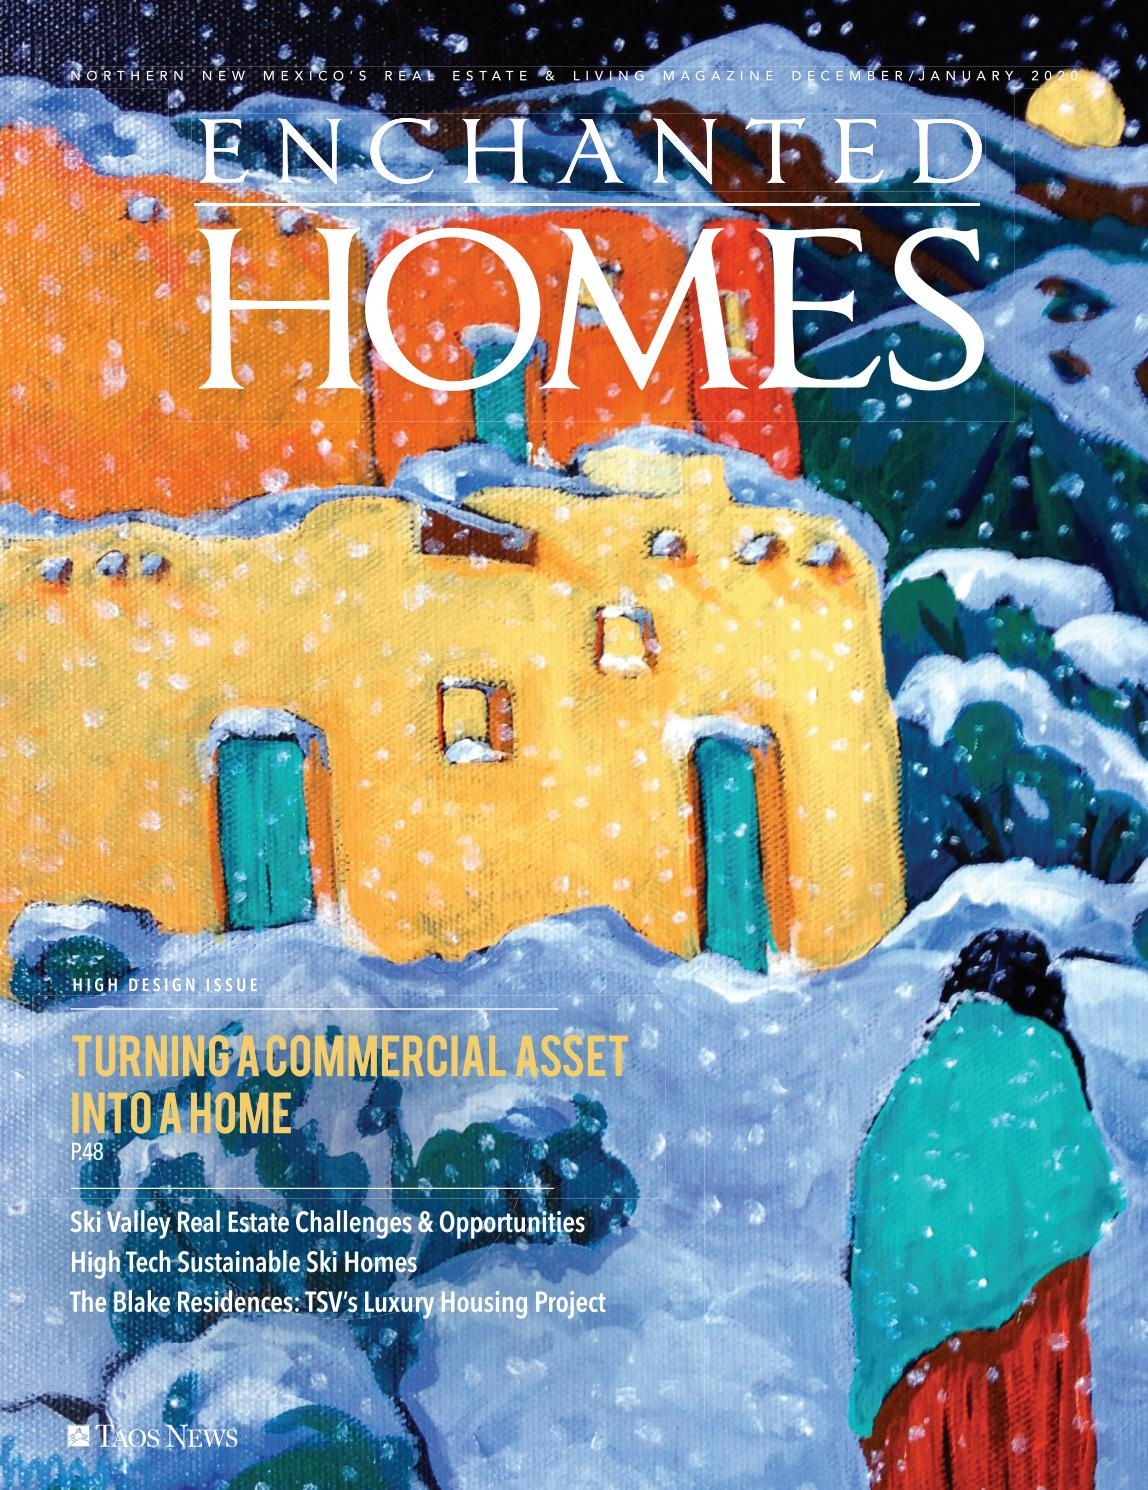 Enchanted Homes Magazine Issue 130 By The Taos News Issuu